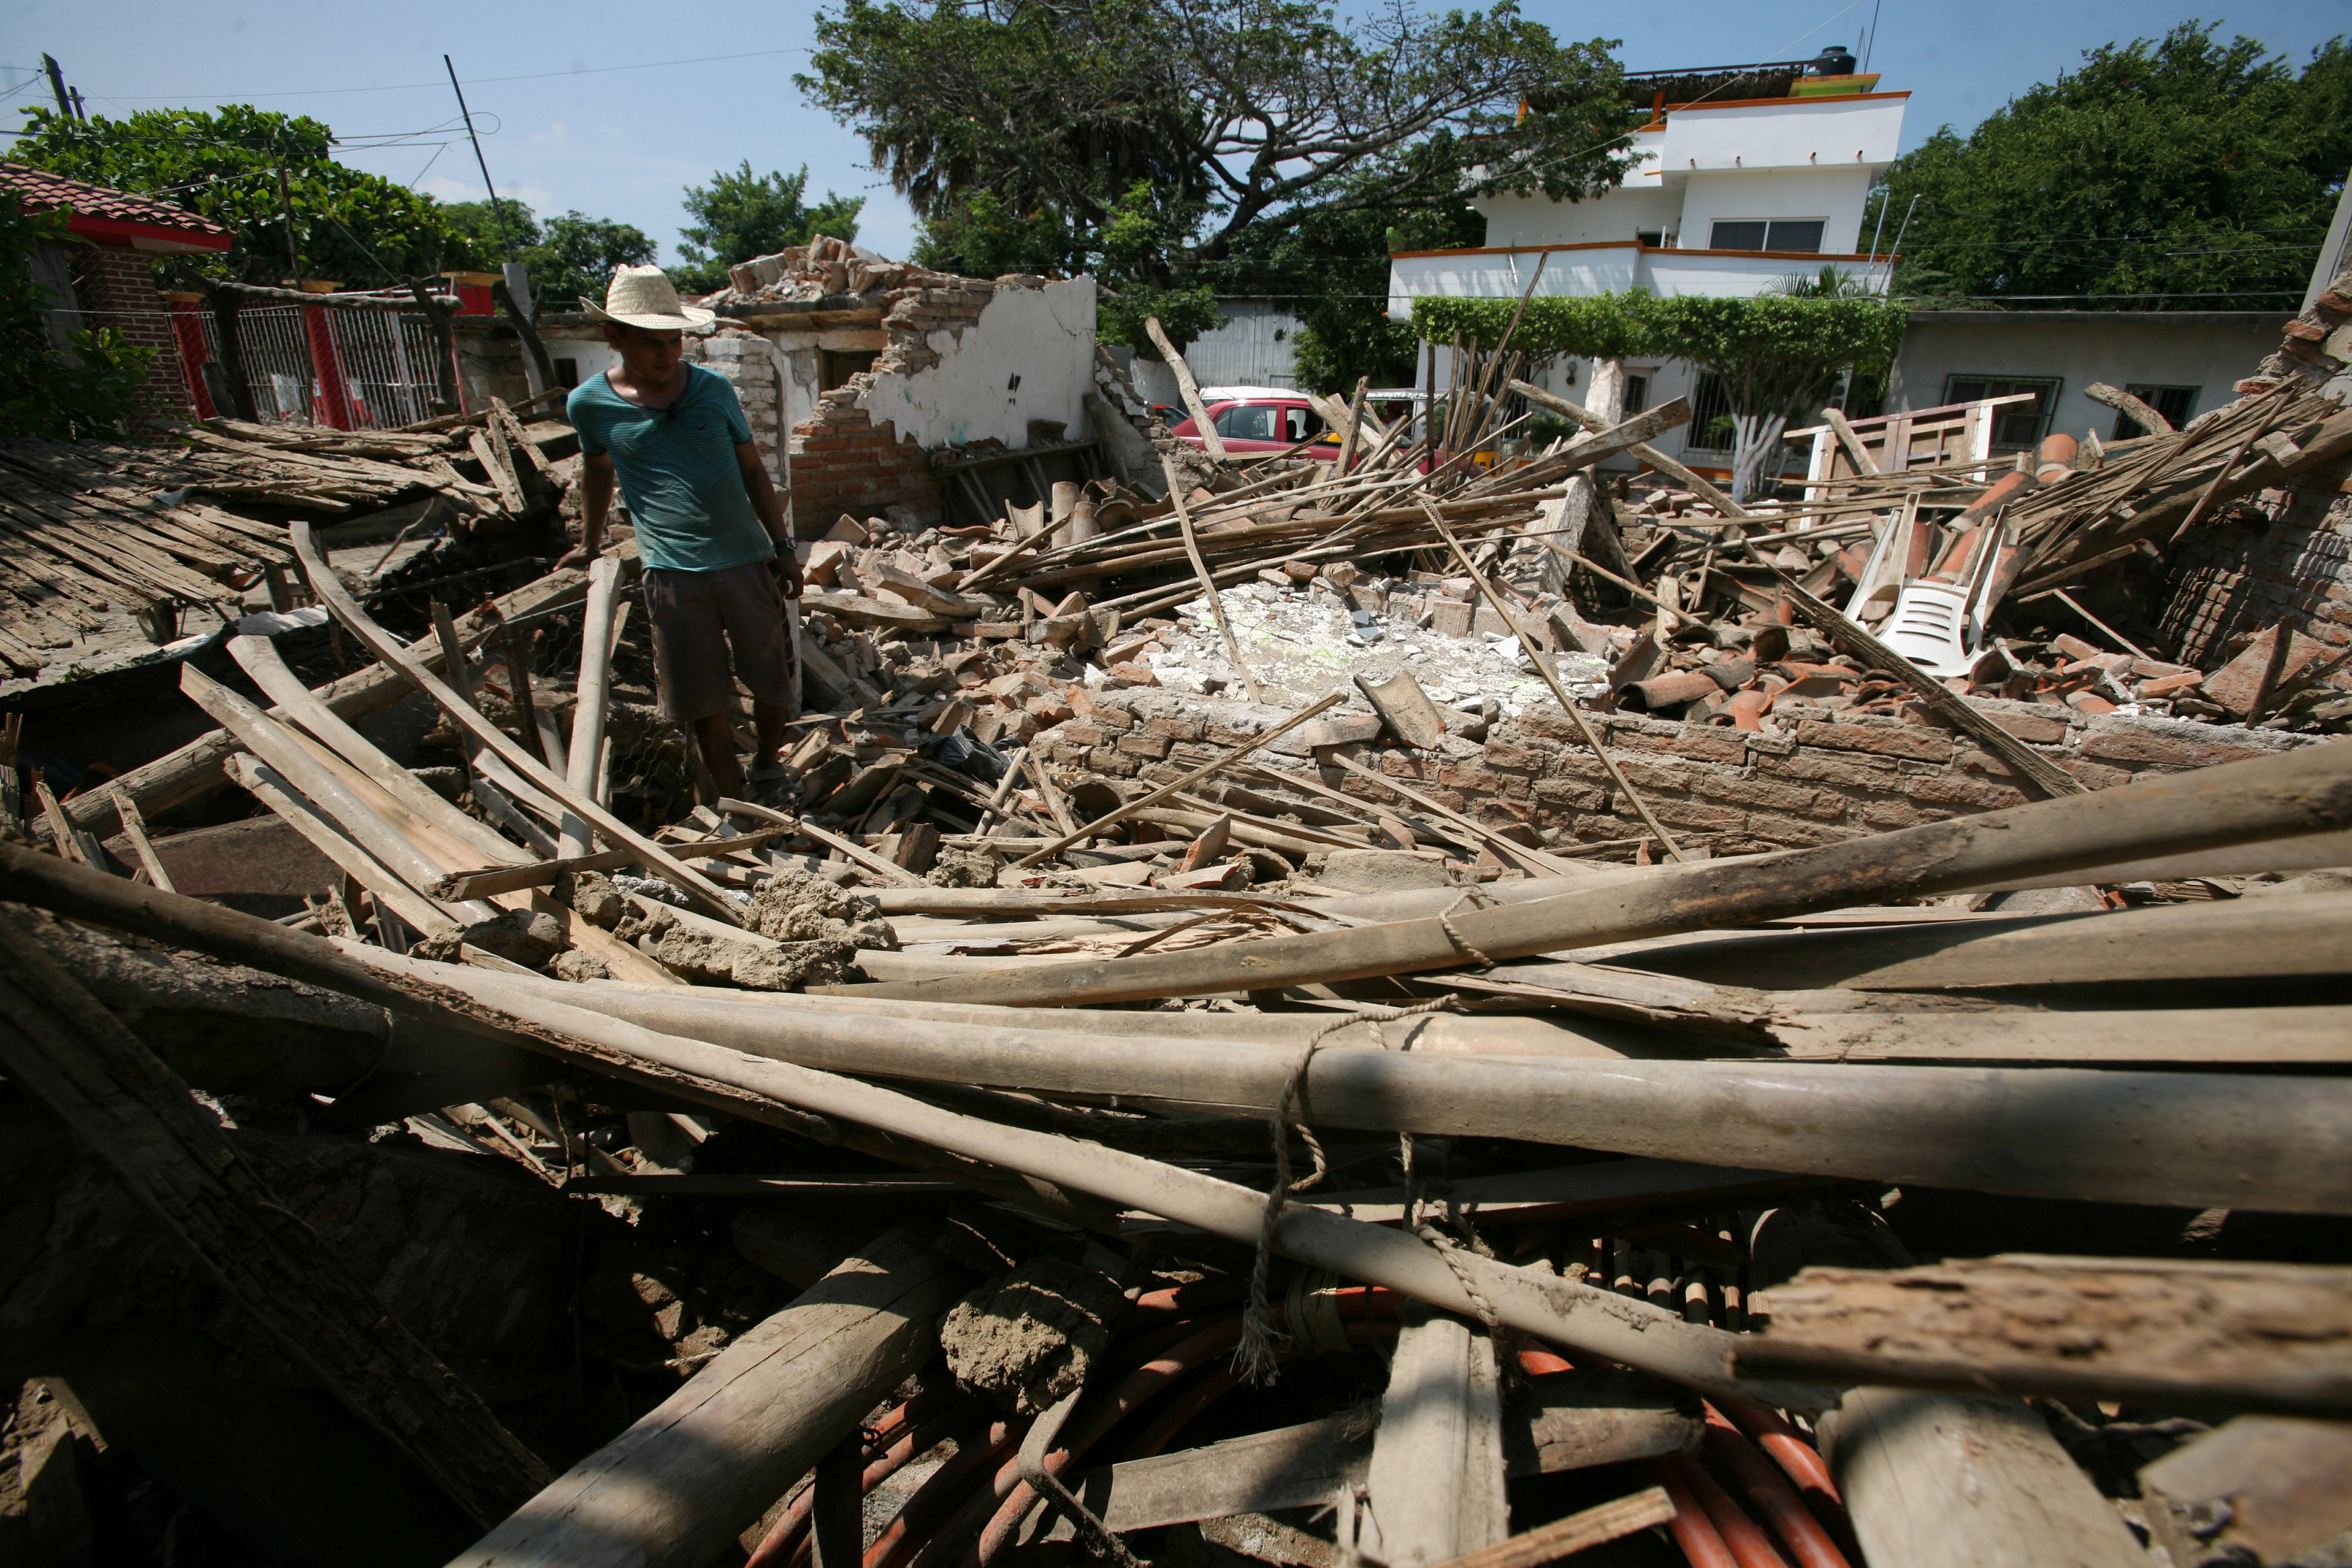 A man stands amidst the remains of a house after an  earthquake struck the southern coast of Mexico in Union Hidalgo, Mexico on Sept. 9, 2017. (REUTERS/Jorge Luis Plata)